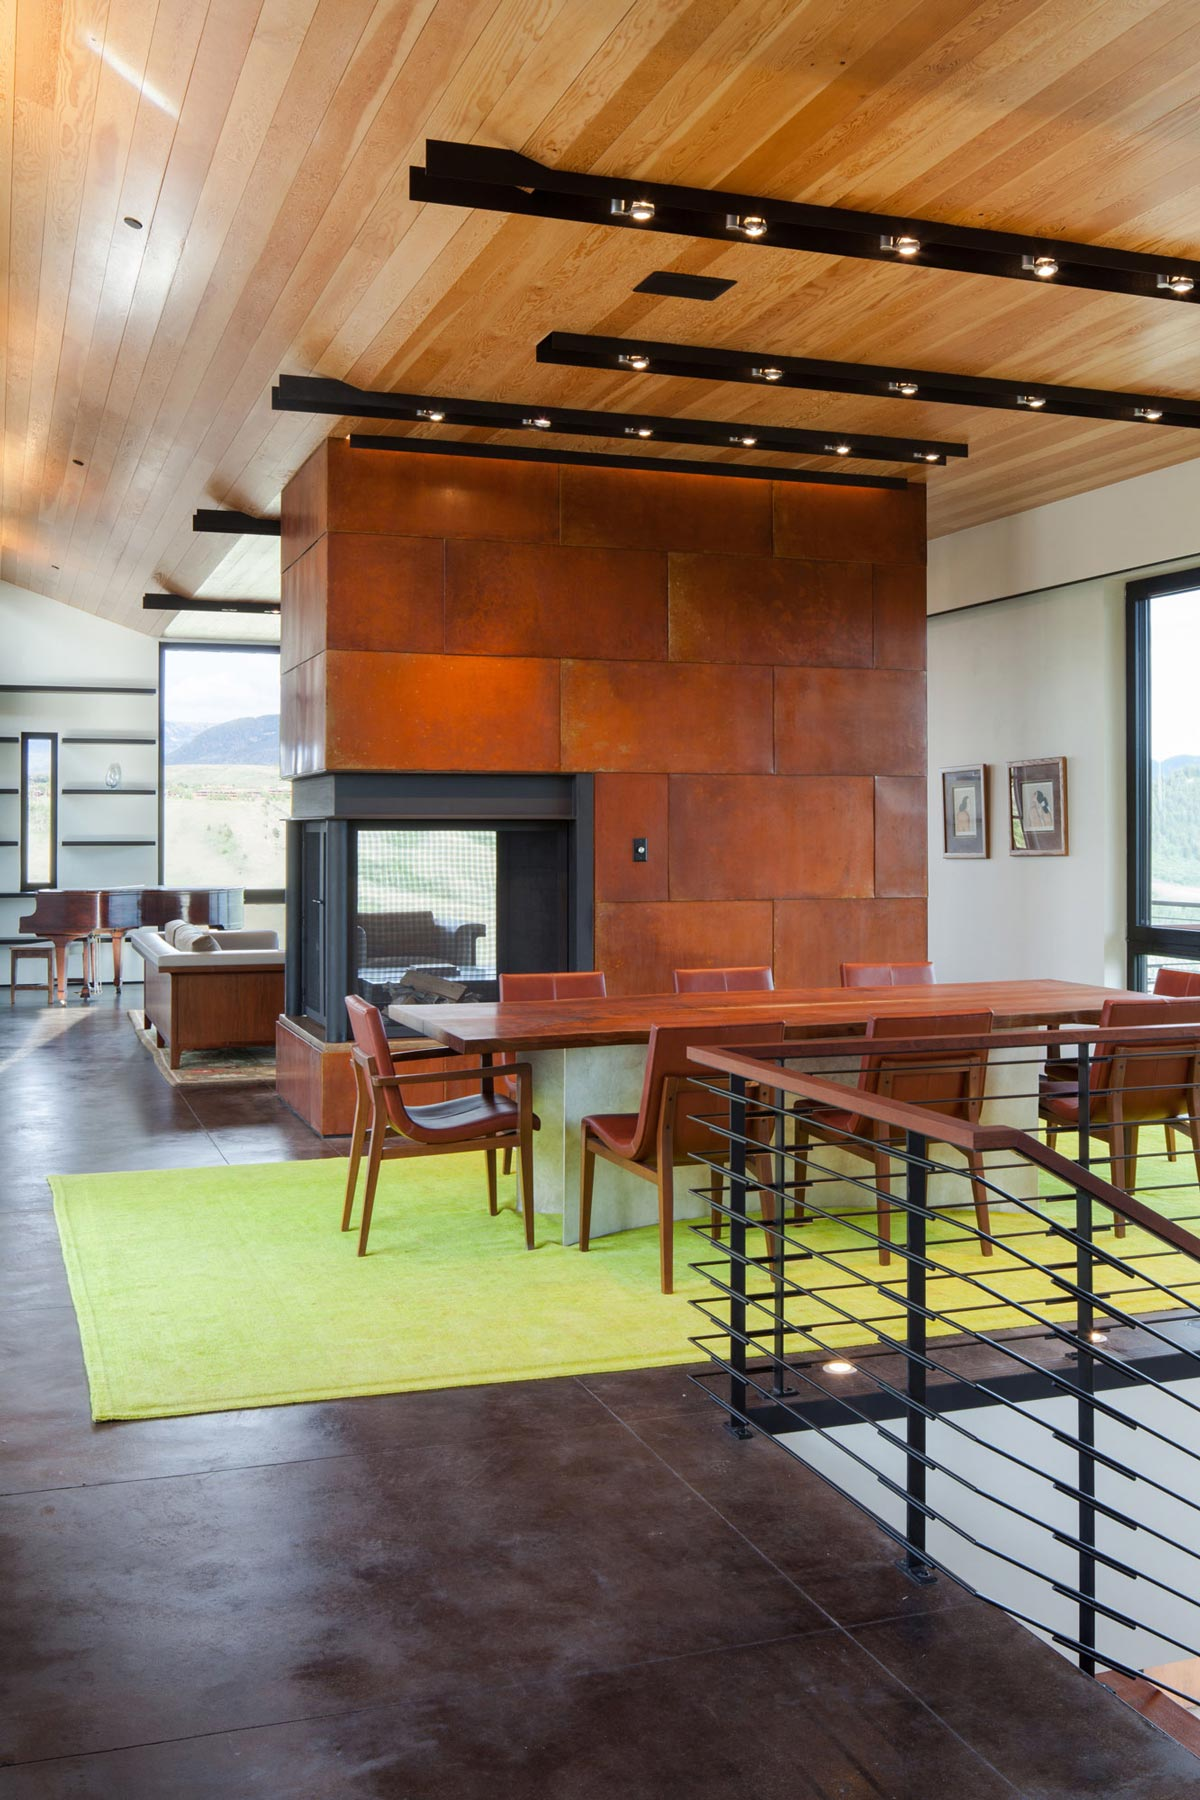 Dining Table, Fireplace, Hillside House in Jackson, Wyoming